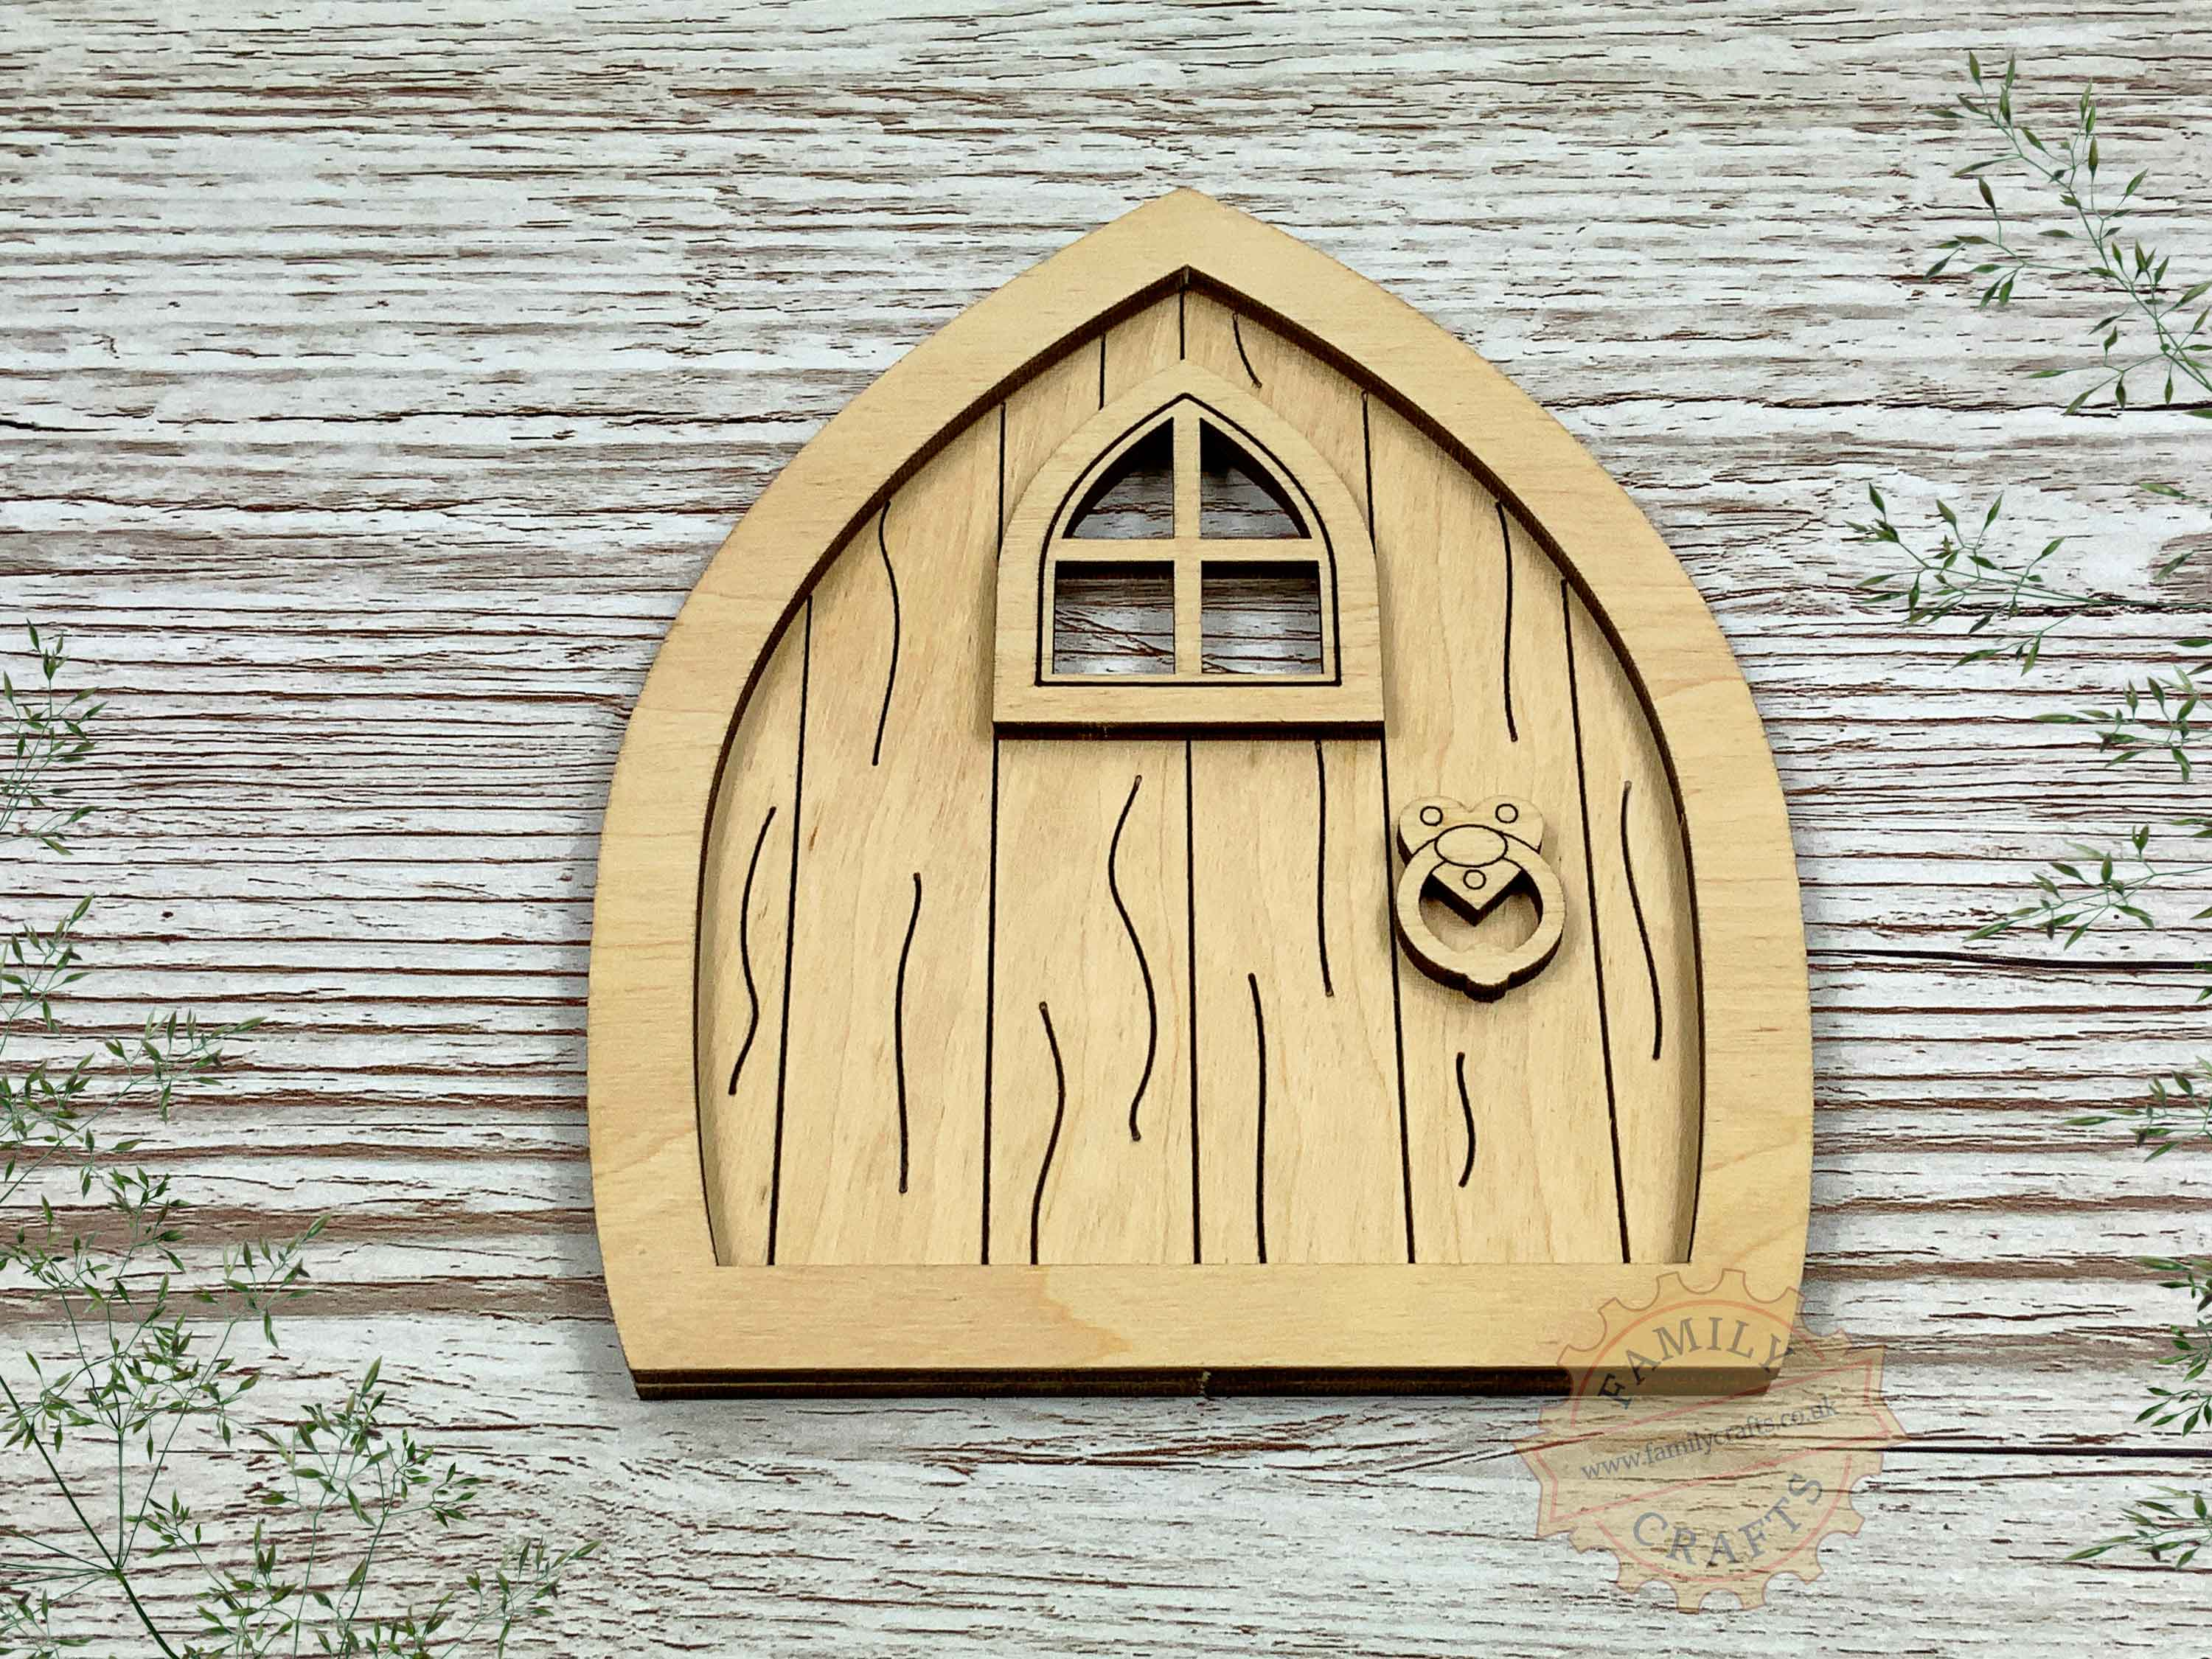 plywood pointed fairy door kit with woodgrain view front